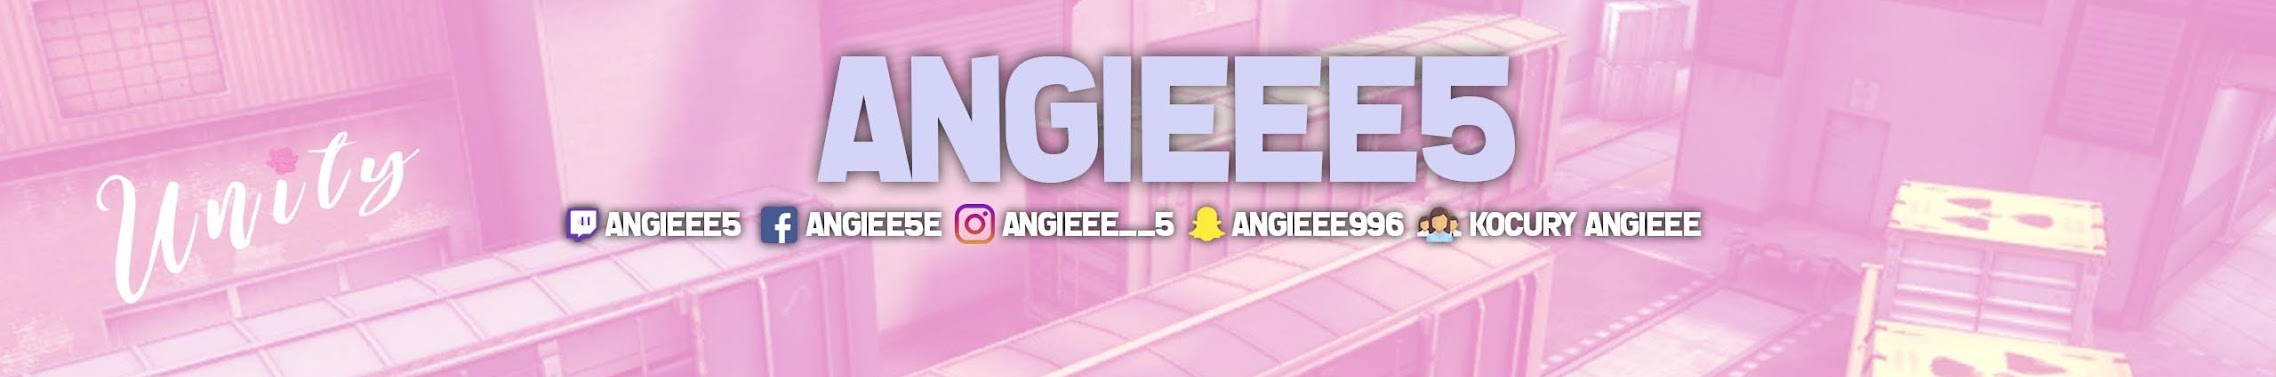 Angieee5